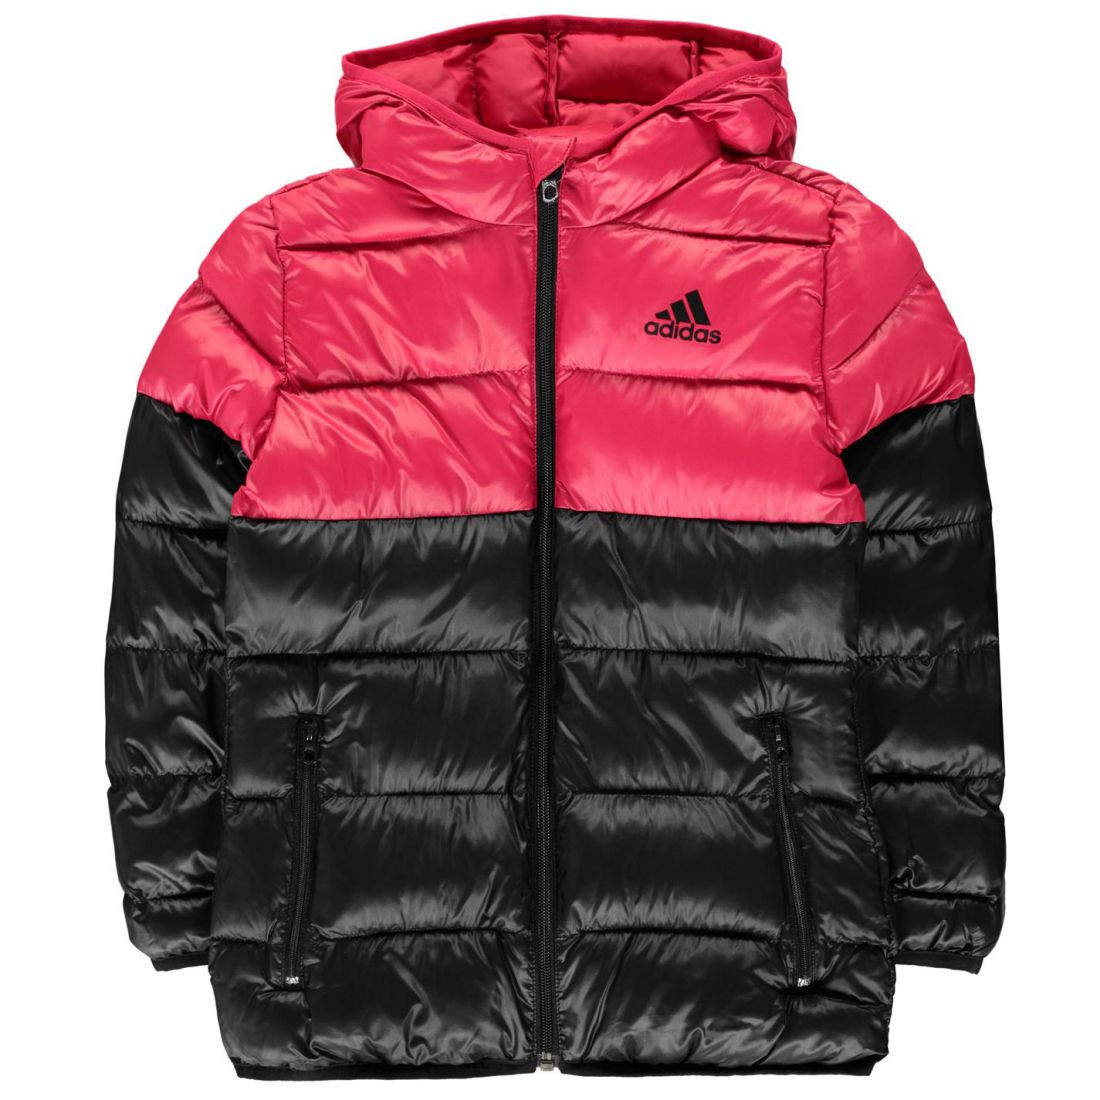 adidas Padded Jacket Youngster Girls Coat Top Full Length Sleeve Hooded Zip